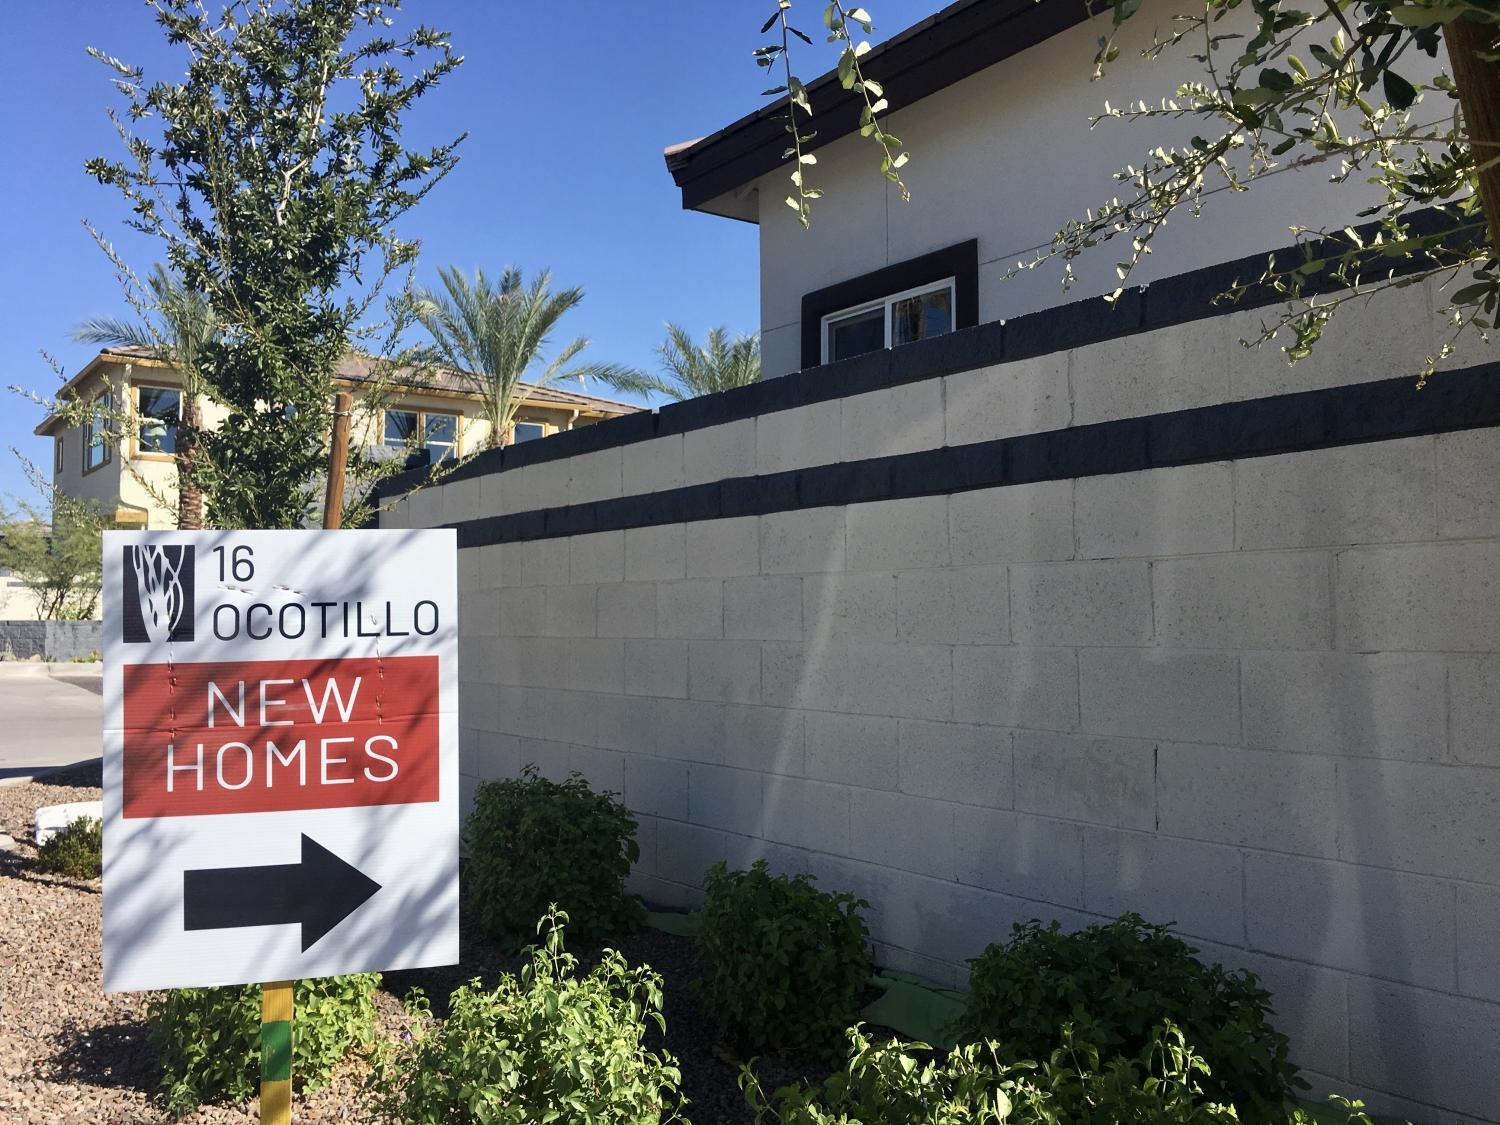 A new gated community near 16th Street and Glendale Avenu